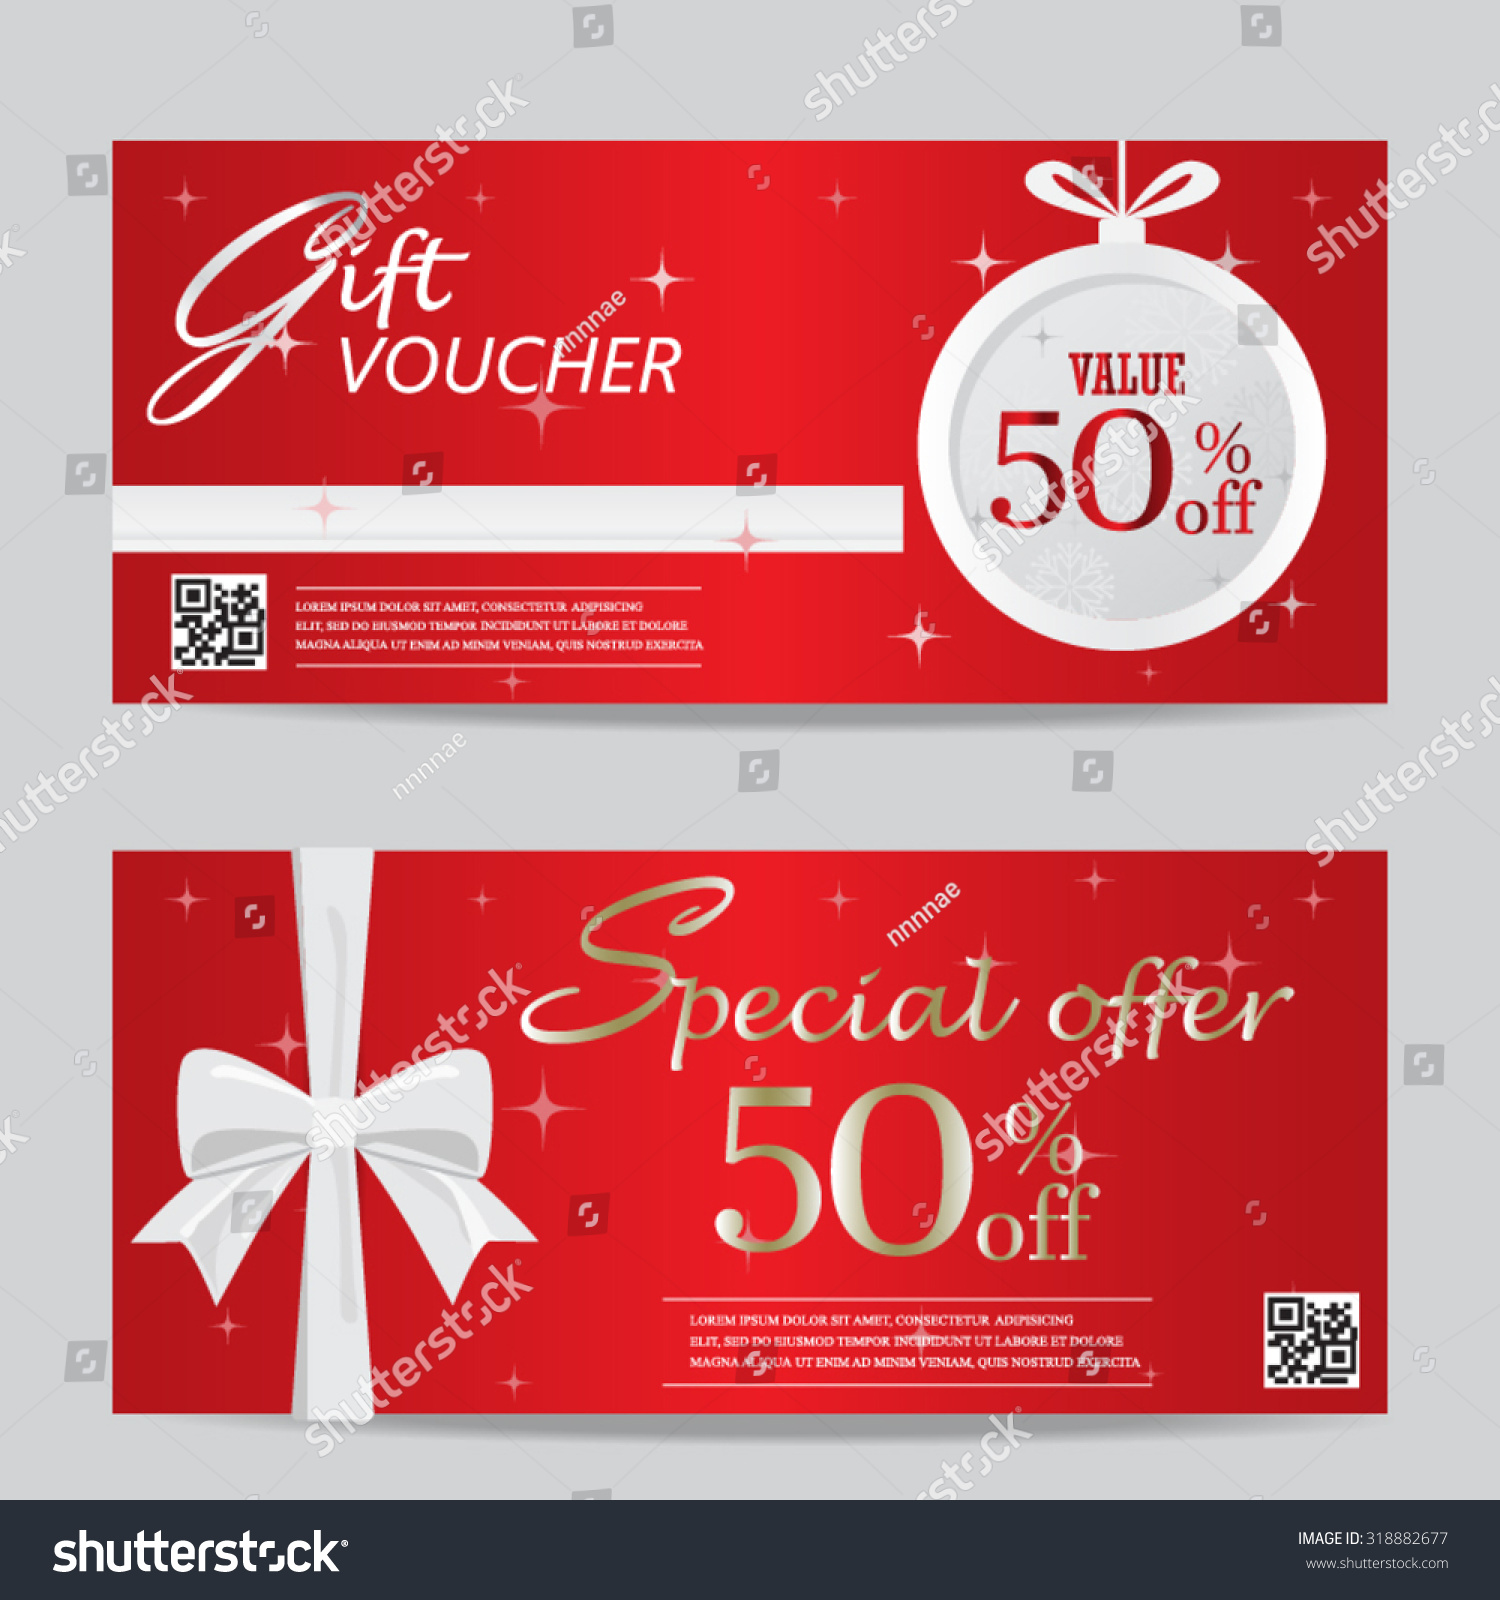 red christmas new year gift voucher stock vector 318882677 red christmas and new year gift voucher certificate coupon template can be use for business